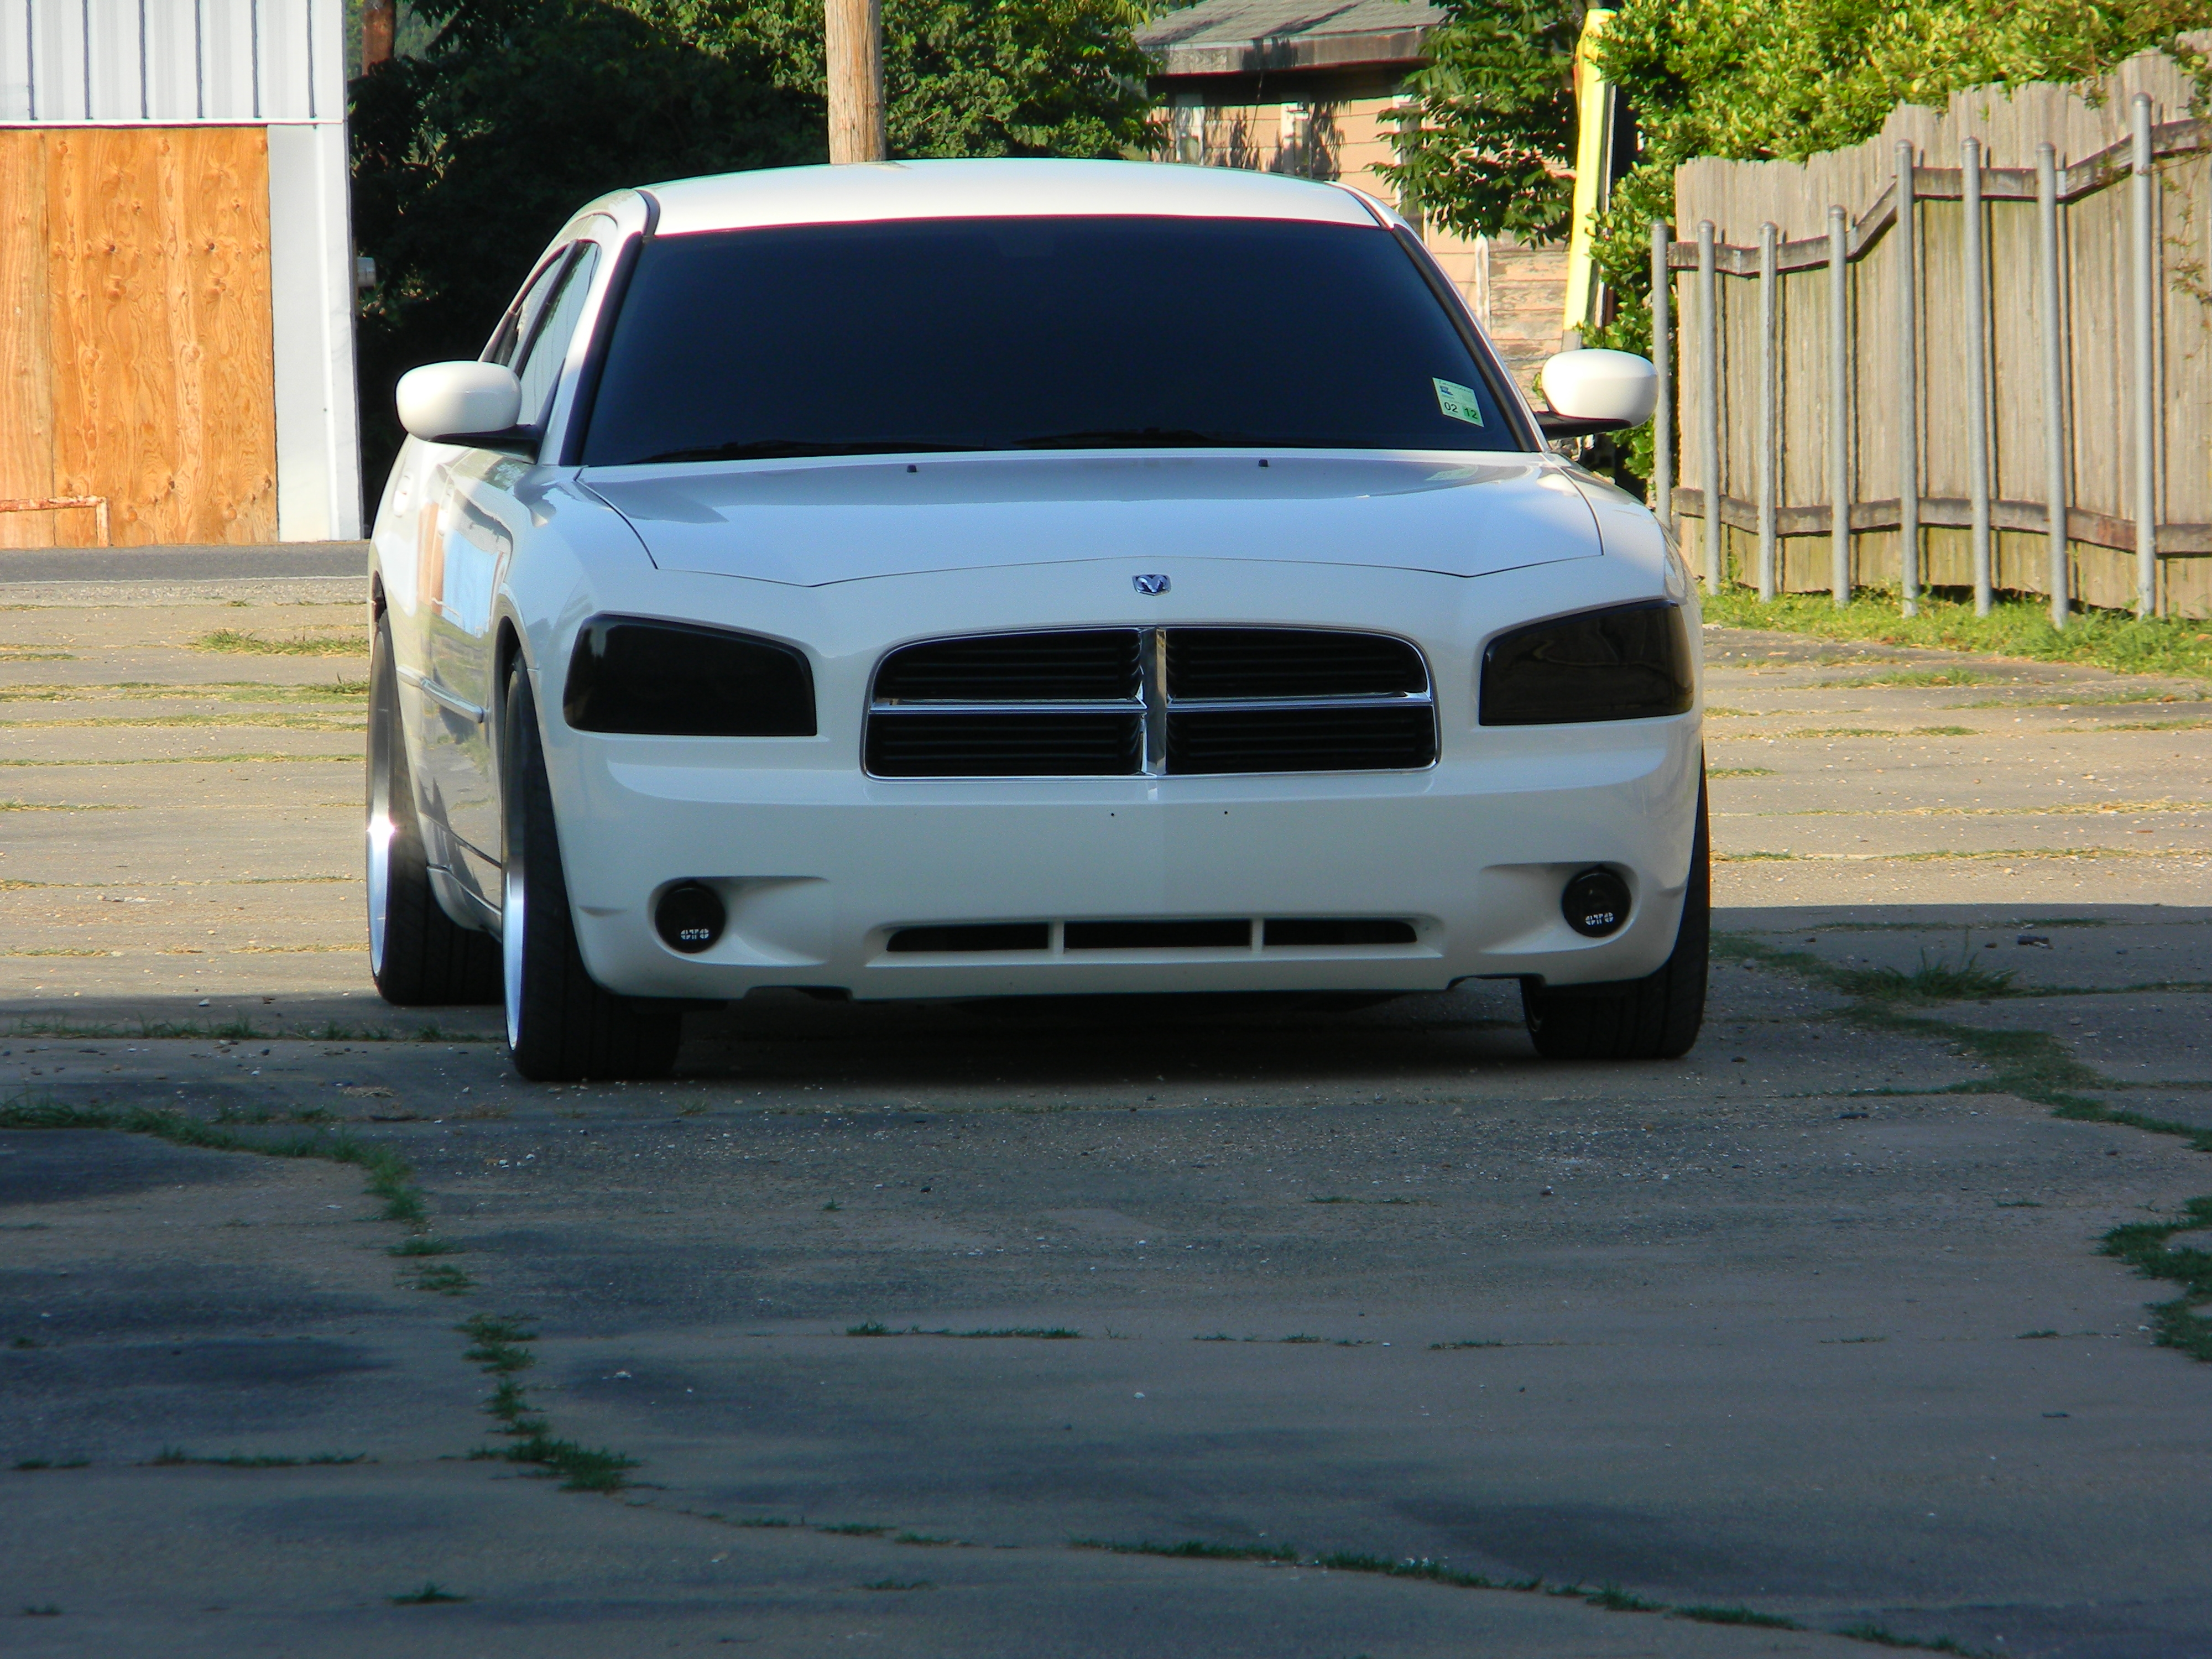 Smith2010 2010 Dodge Charger 15166370